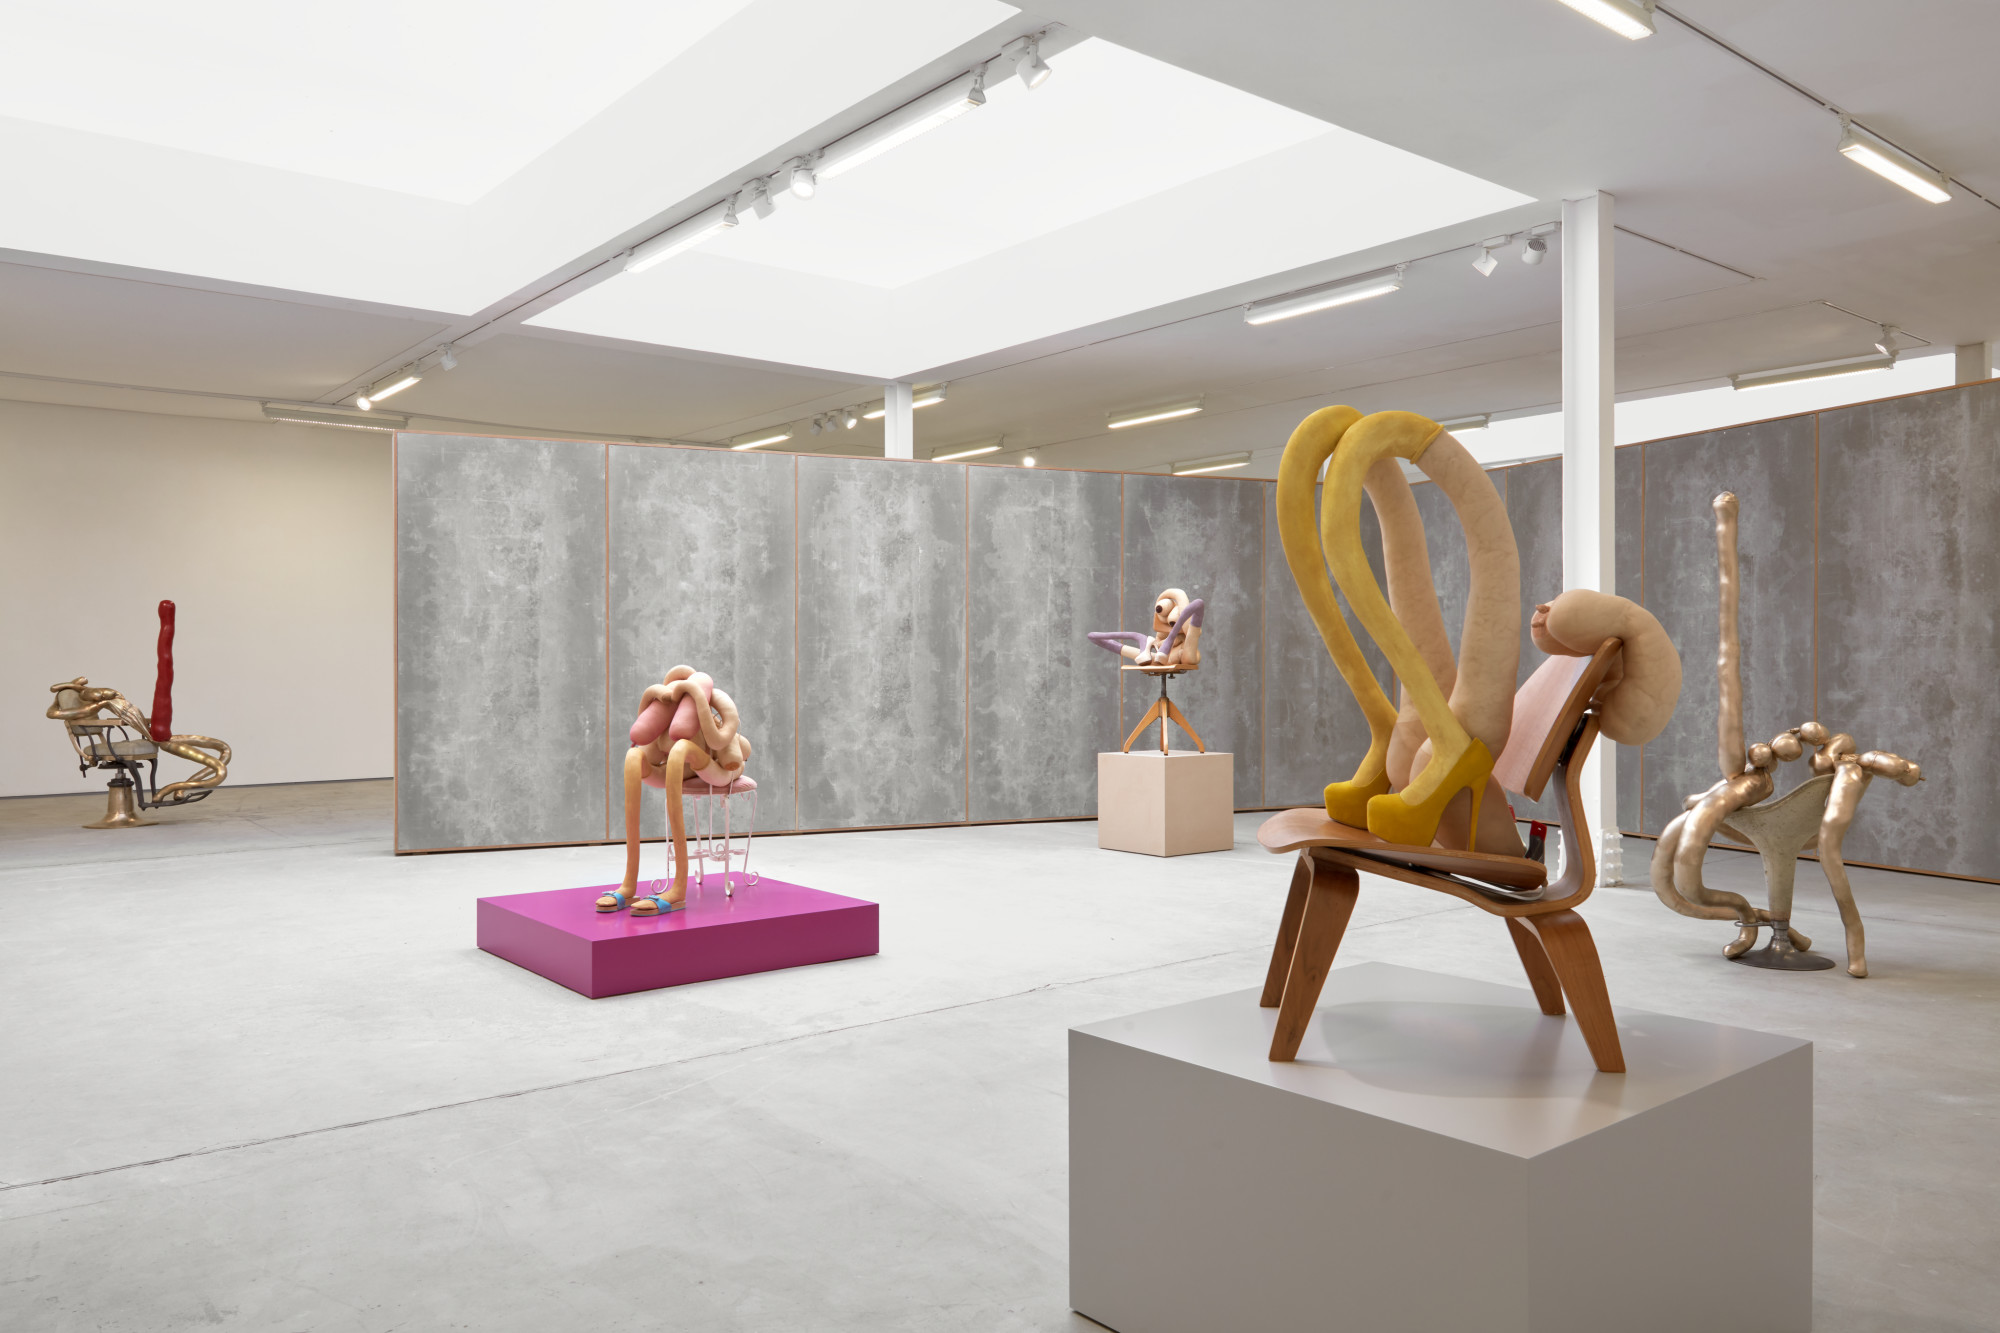 "<div class=""artwork_caption""><p>Installation view, Sarah Lucas, <em>HONEY PIE, </em>62 Kingly Street W1, 16 March - 08 August 2020</p><p>Photograophy by Robert Glowacki</p></div>"